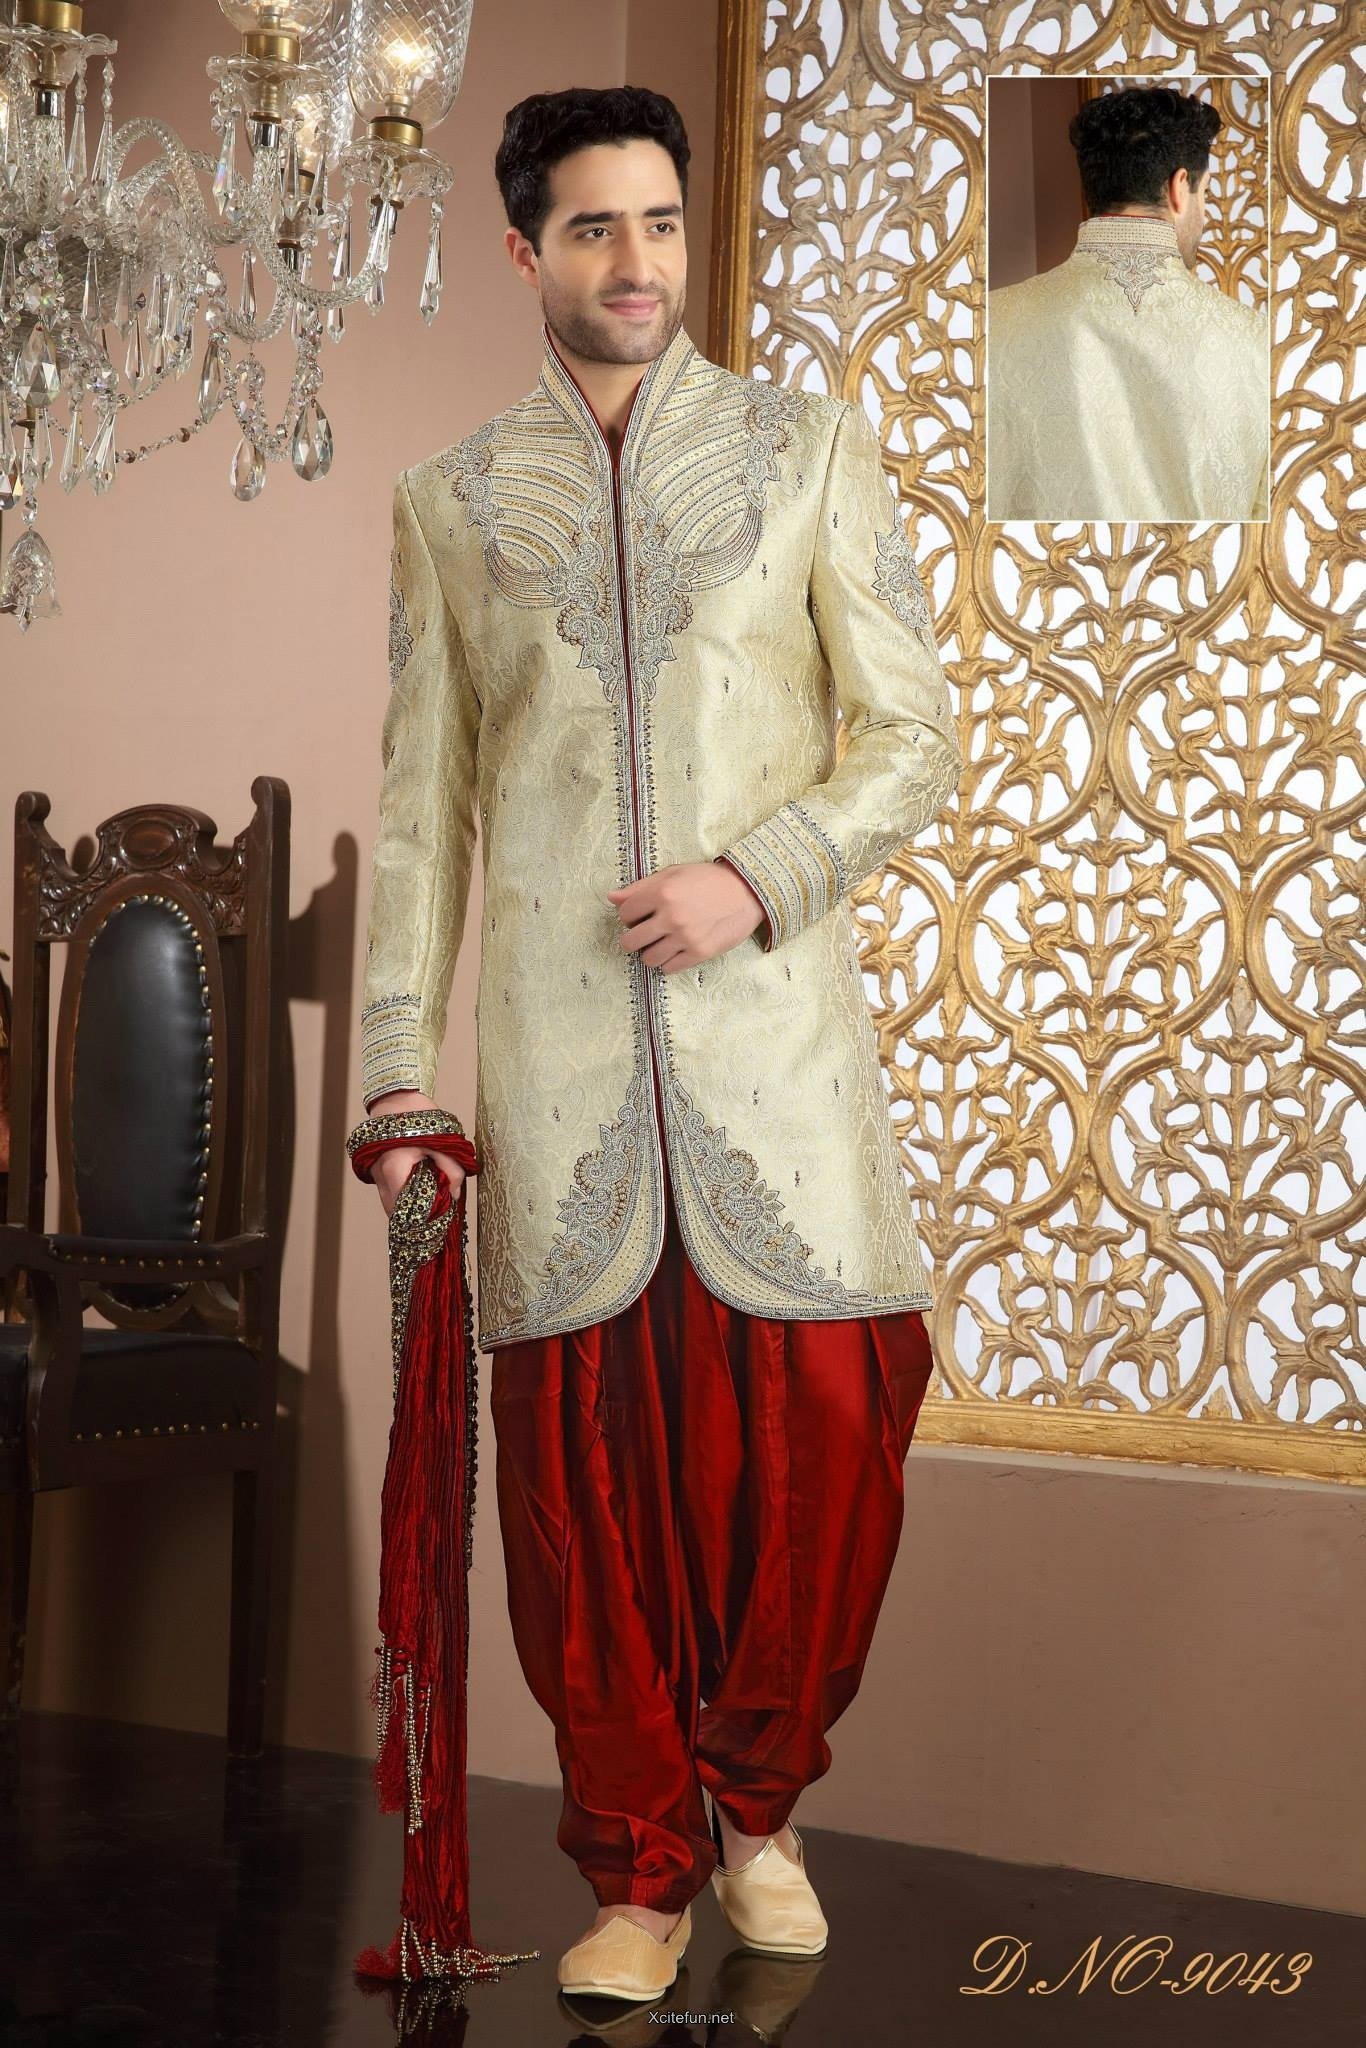 Groom Wedding day Sherwani Collection  XciteFunnet